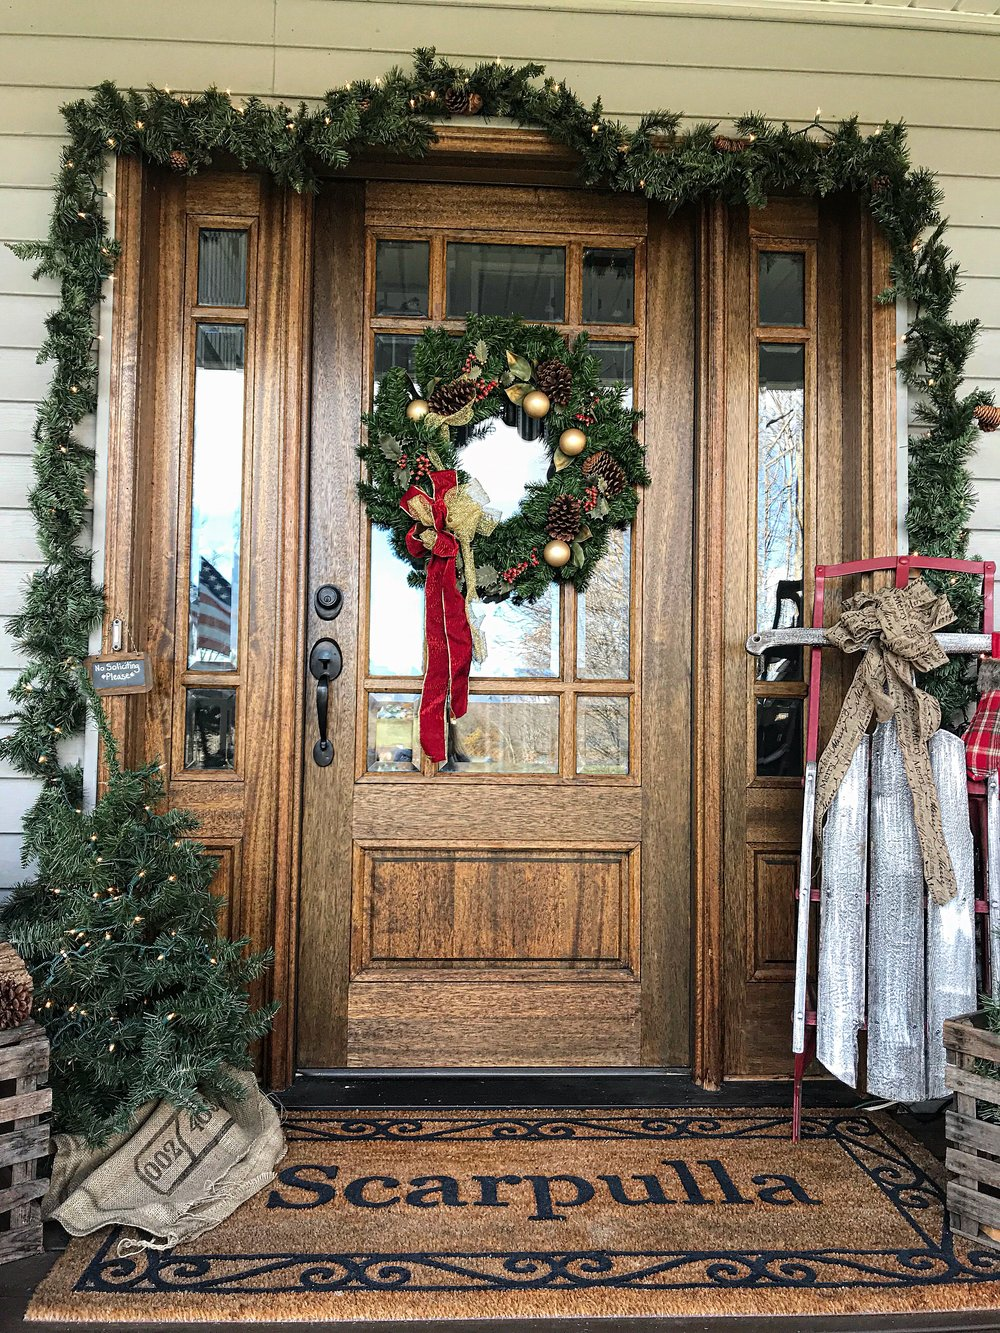 *Tip Iu0027m not a fan of the  over the door  wreath hooks so I put a black command hook on the glass behind the wreath. & Decor Essentials for a Welcoming Front Door for the Holidays u2014 The ...